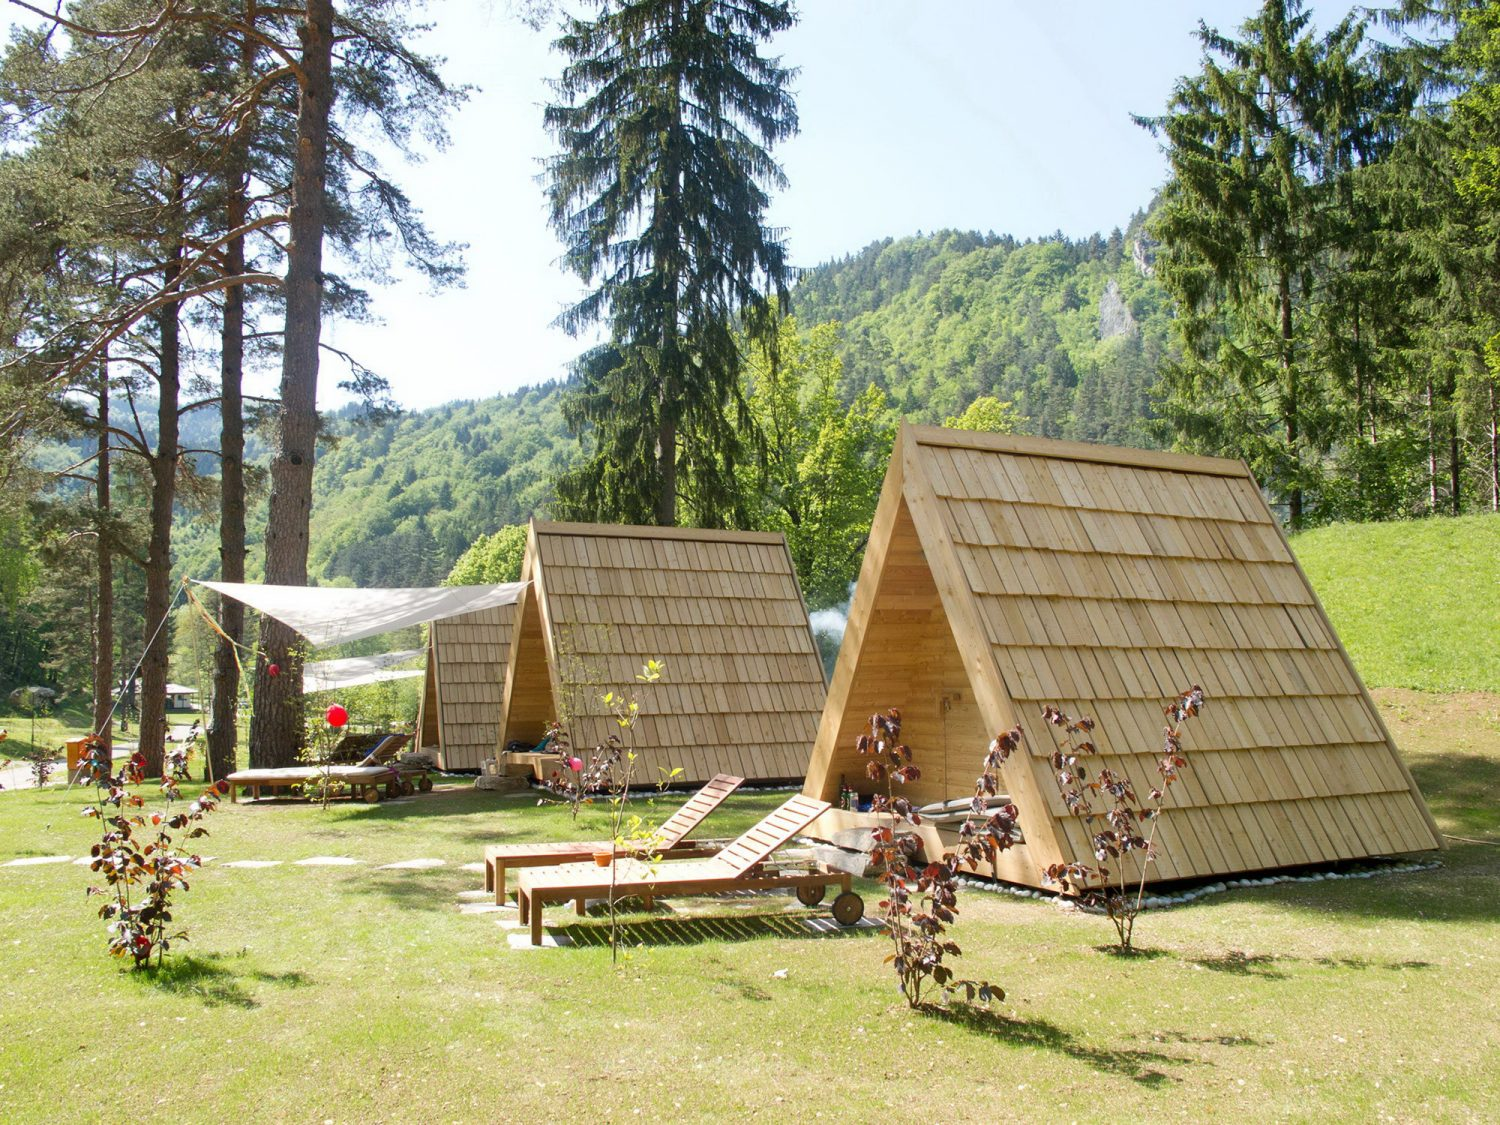 Glamping Cabins – Tiny A-Frame Cabins by Lushna